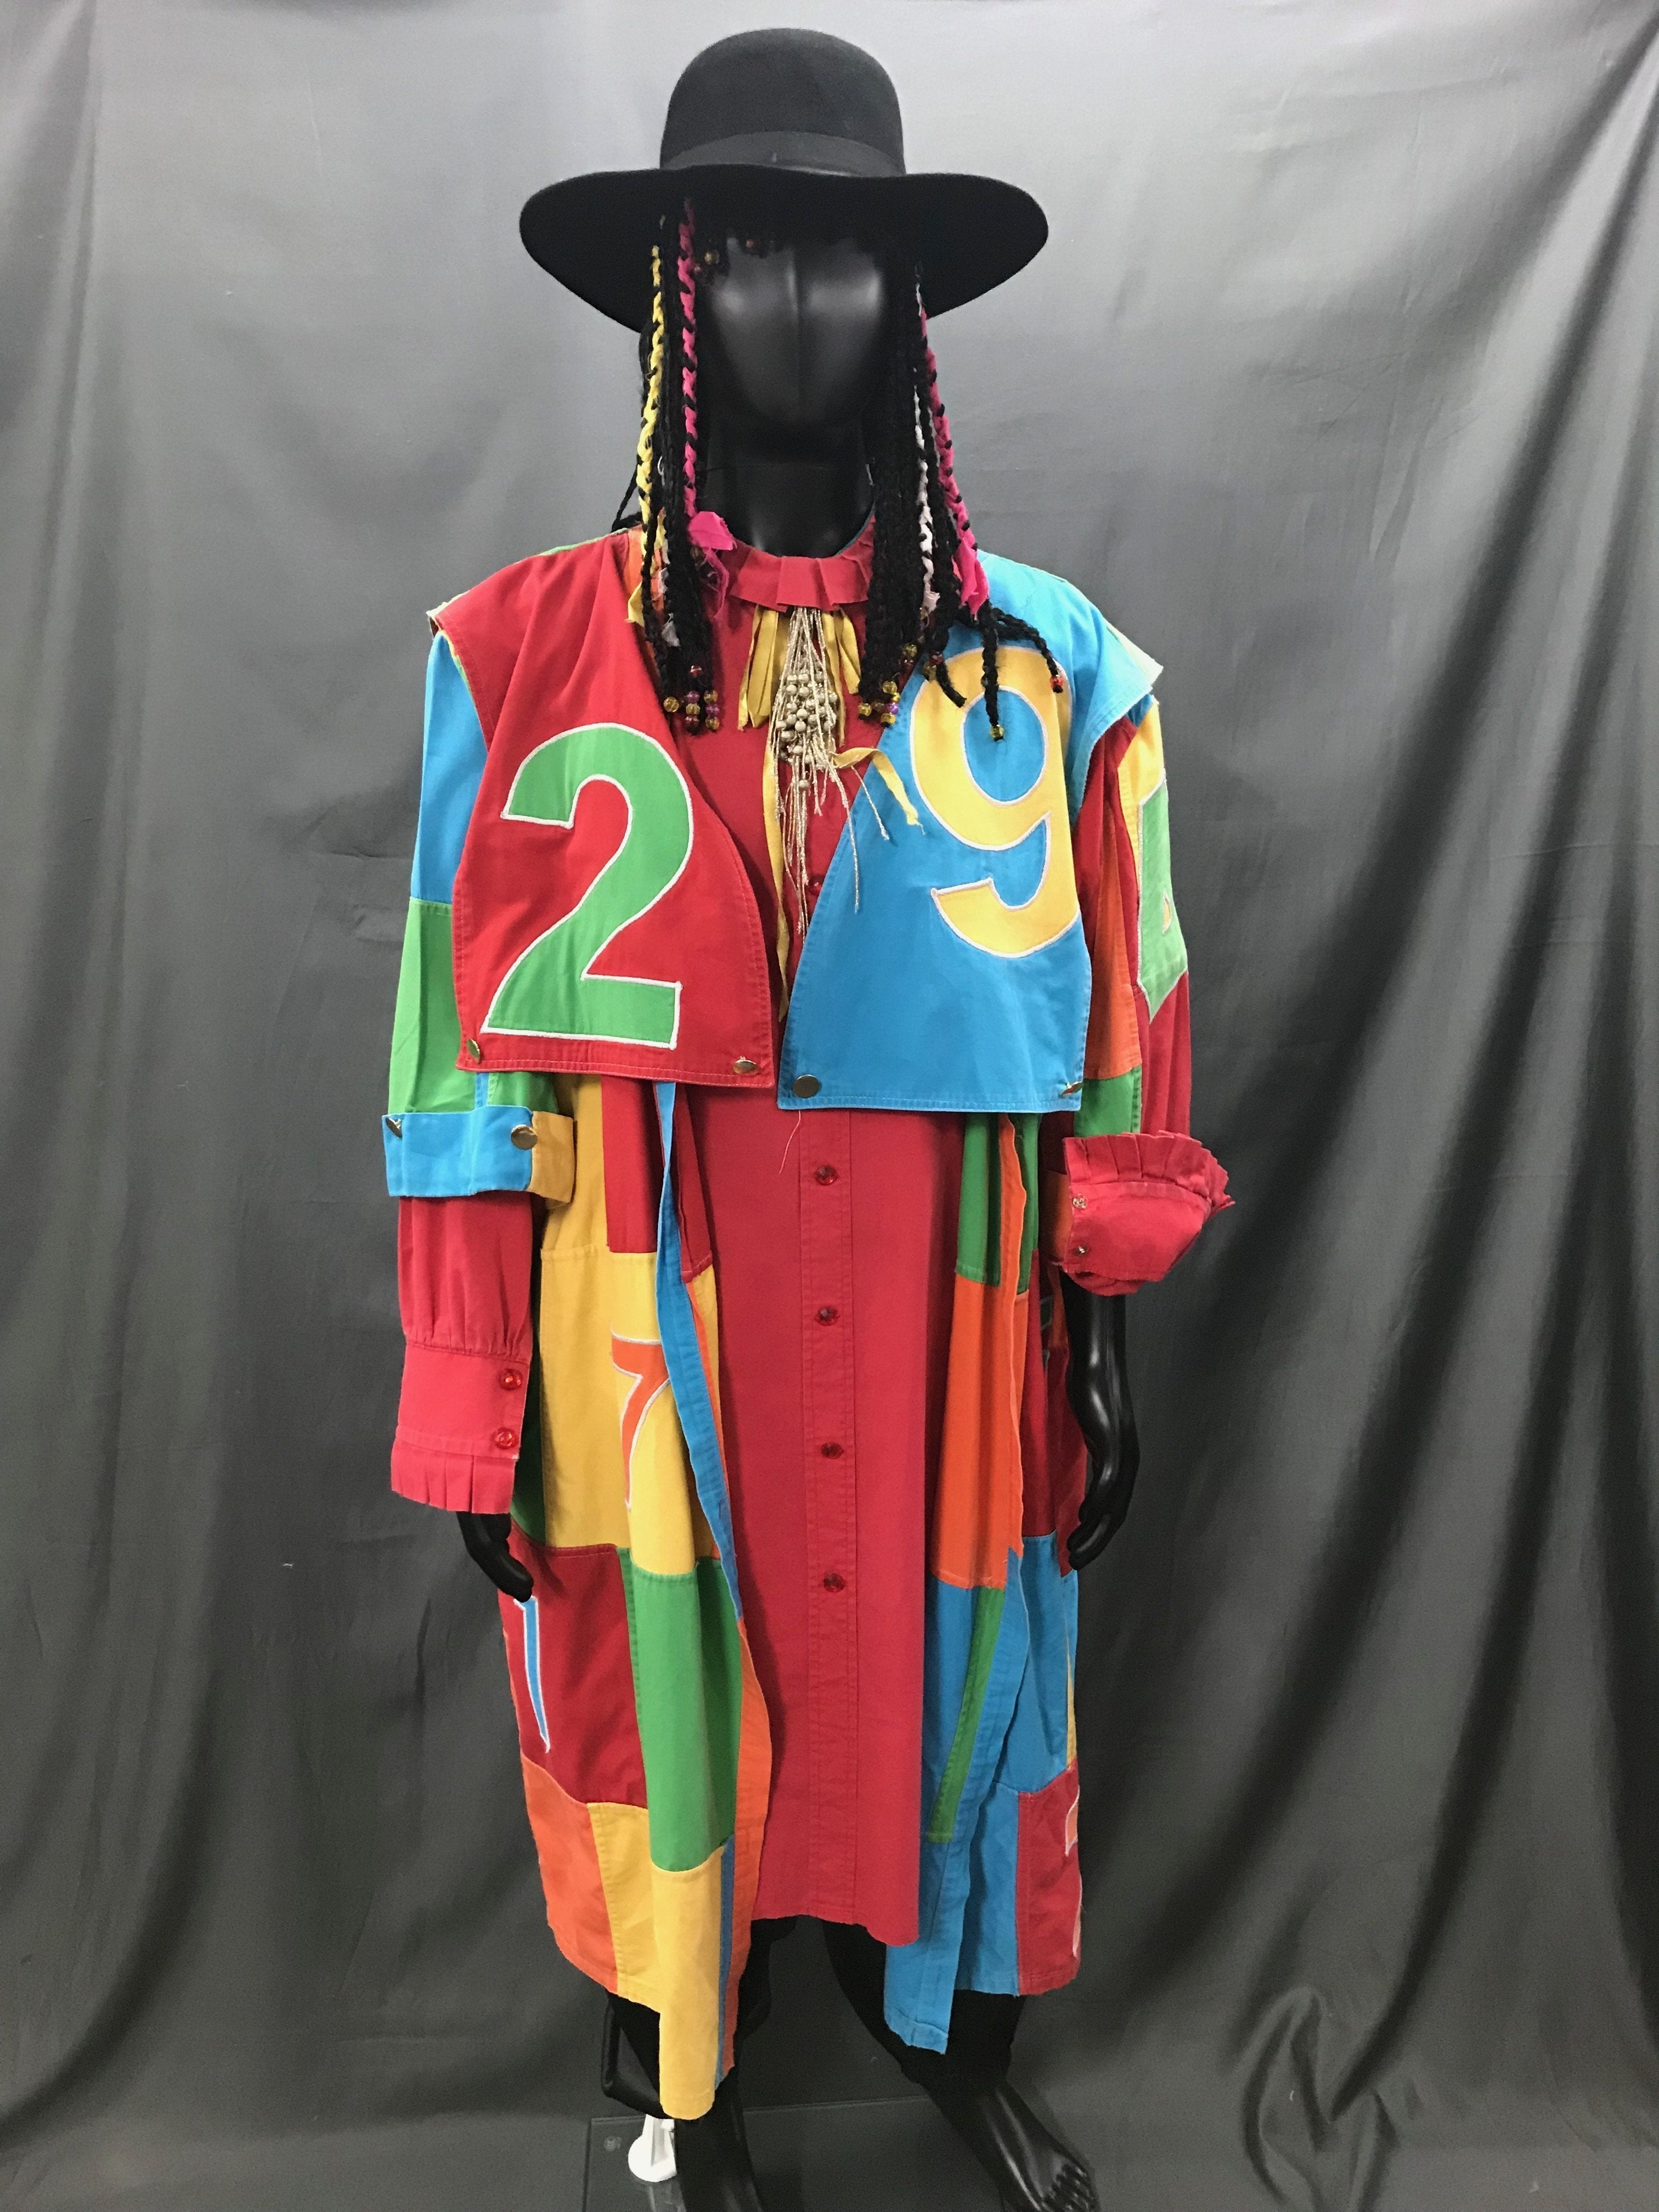 Boy George Costume - Hire - The Costume Company | Fancy Dress Costumes Hire and Purchase Brisbane and Australia